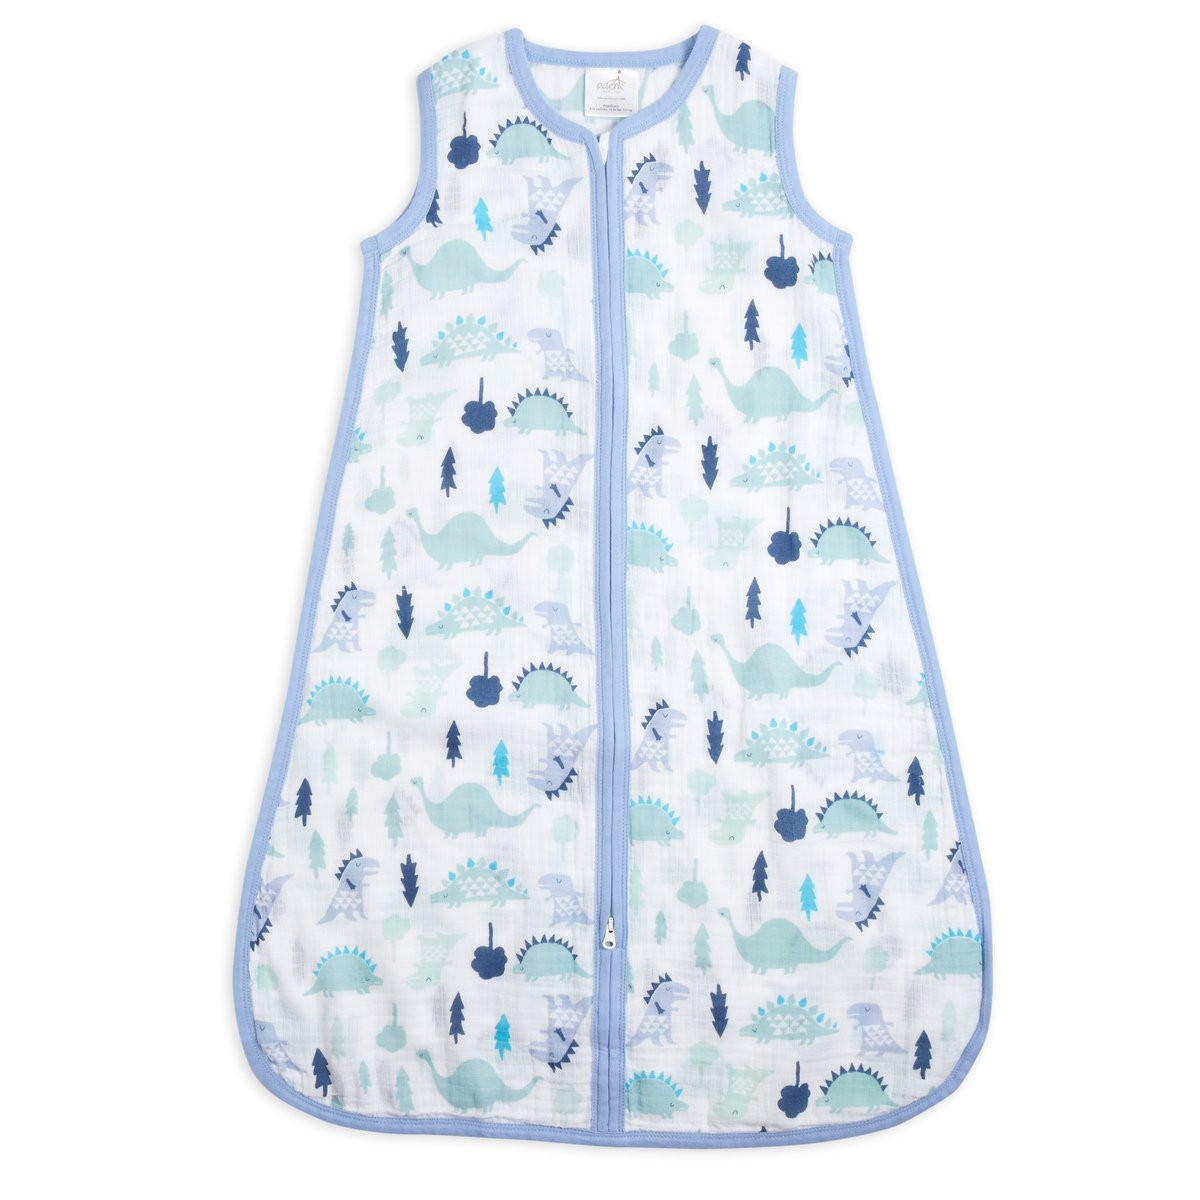 aden + anais Classic Sleeping Bag, 100% Cotton Muslin, Wearable Baby Blanket, Dinos, Extra Large, 18+ Months